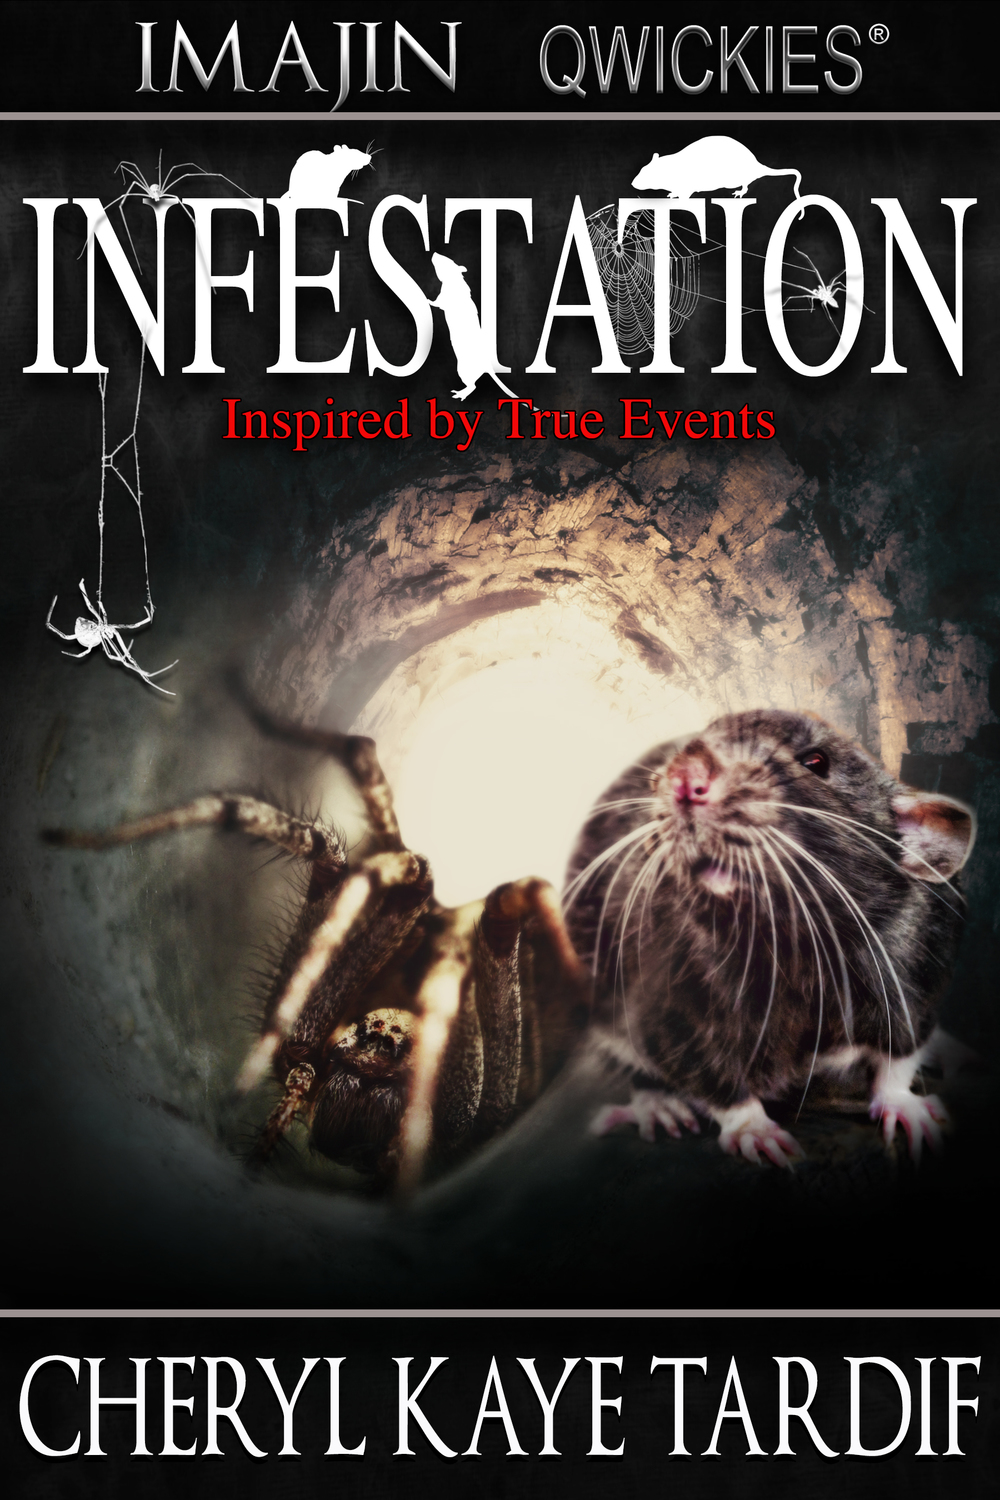 Infestation by Cheryl Kaye Tardif